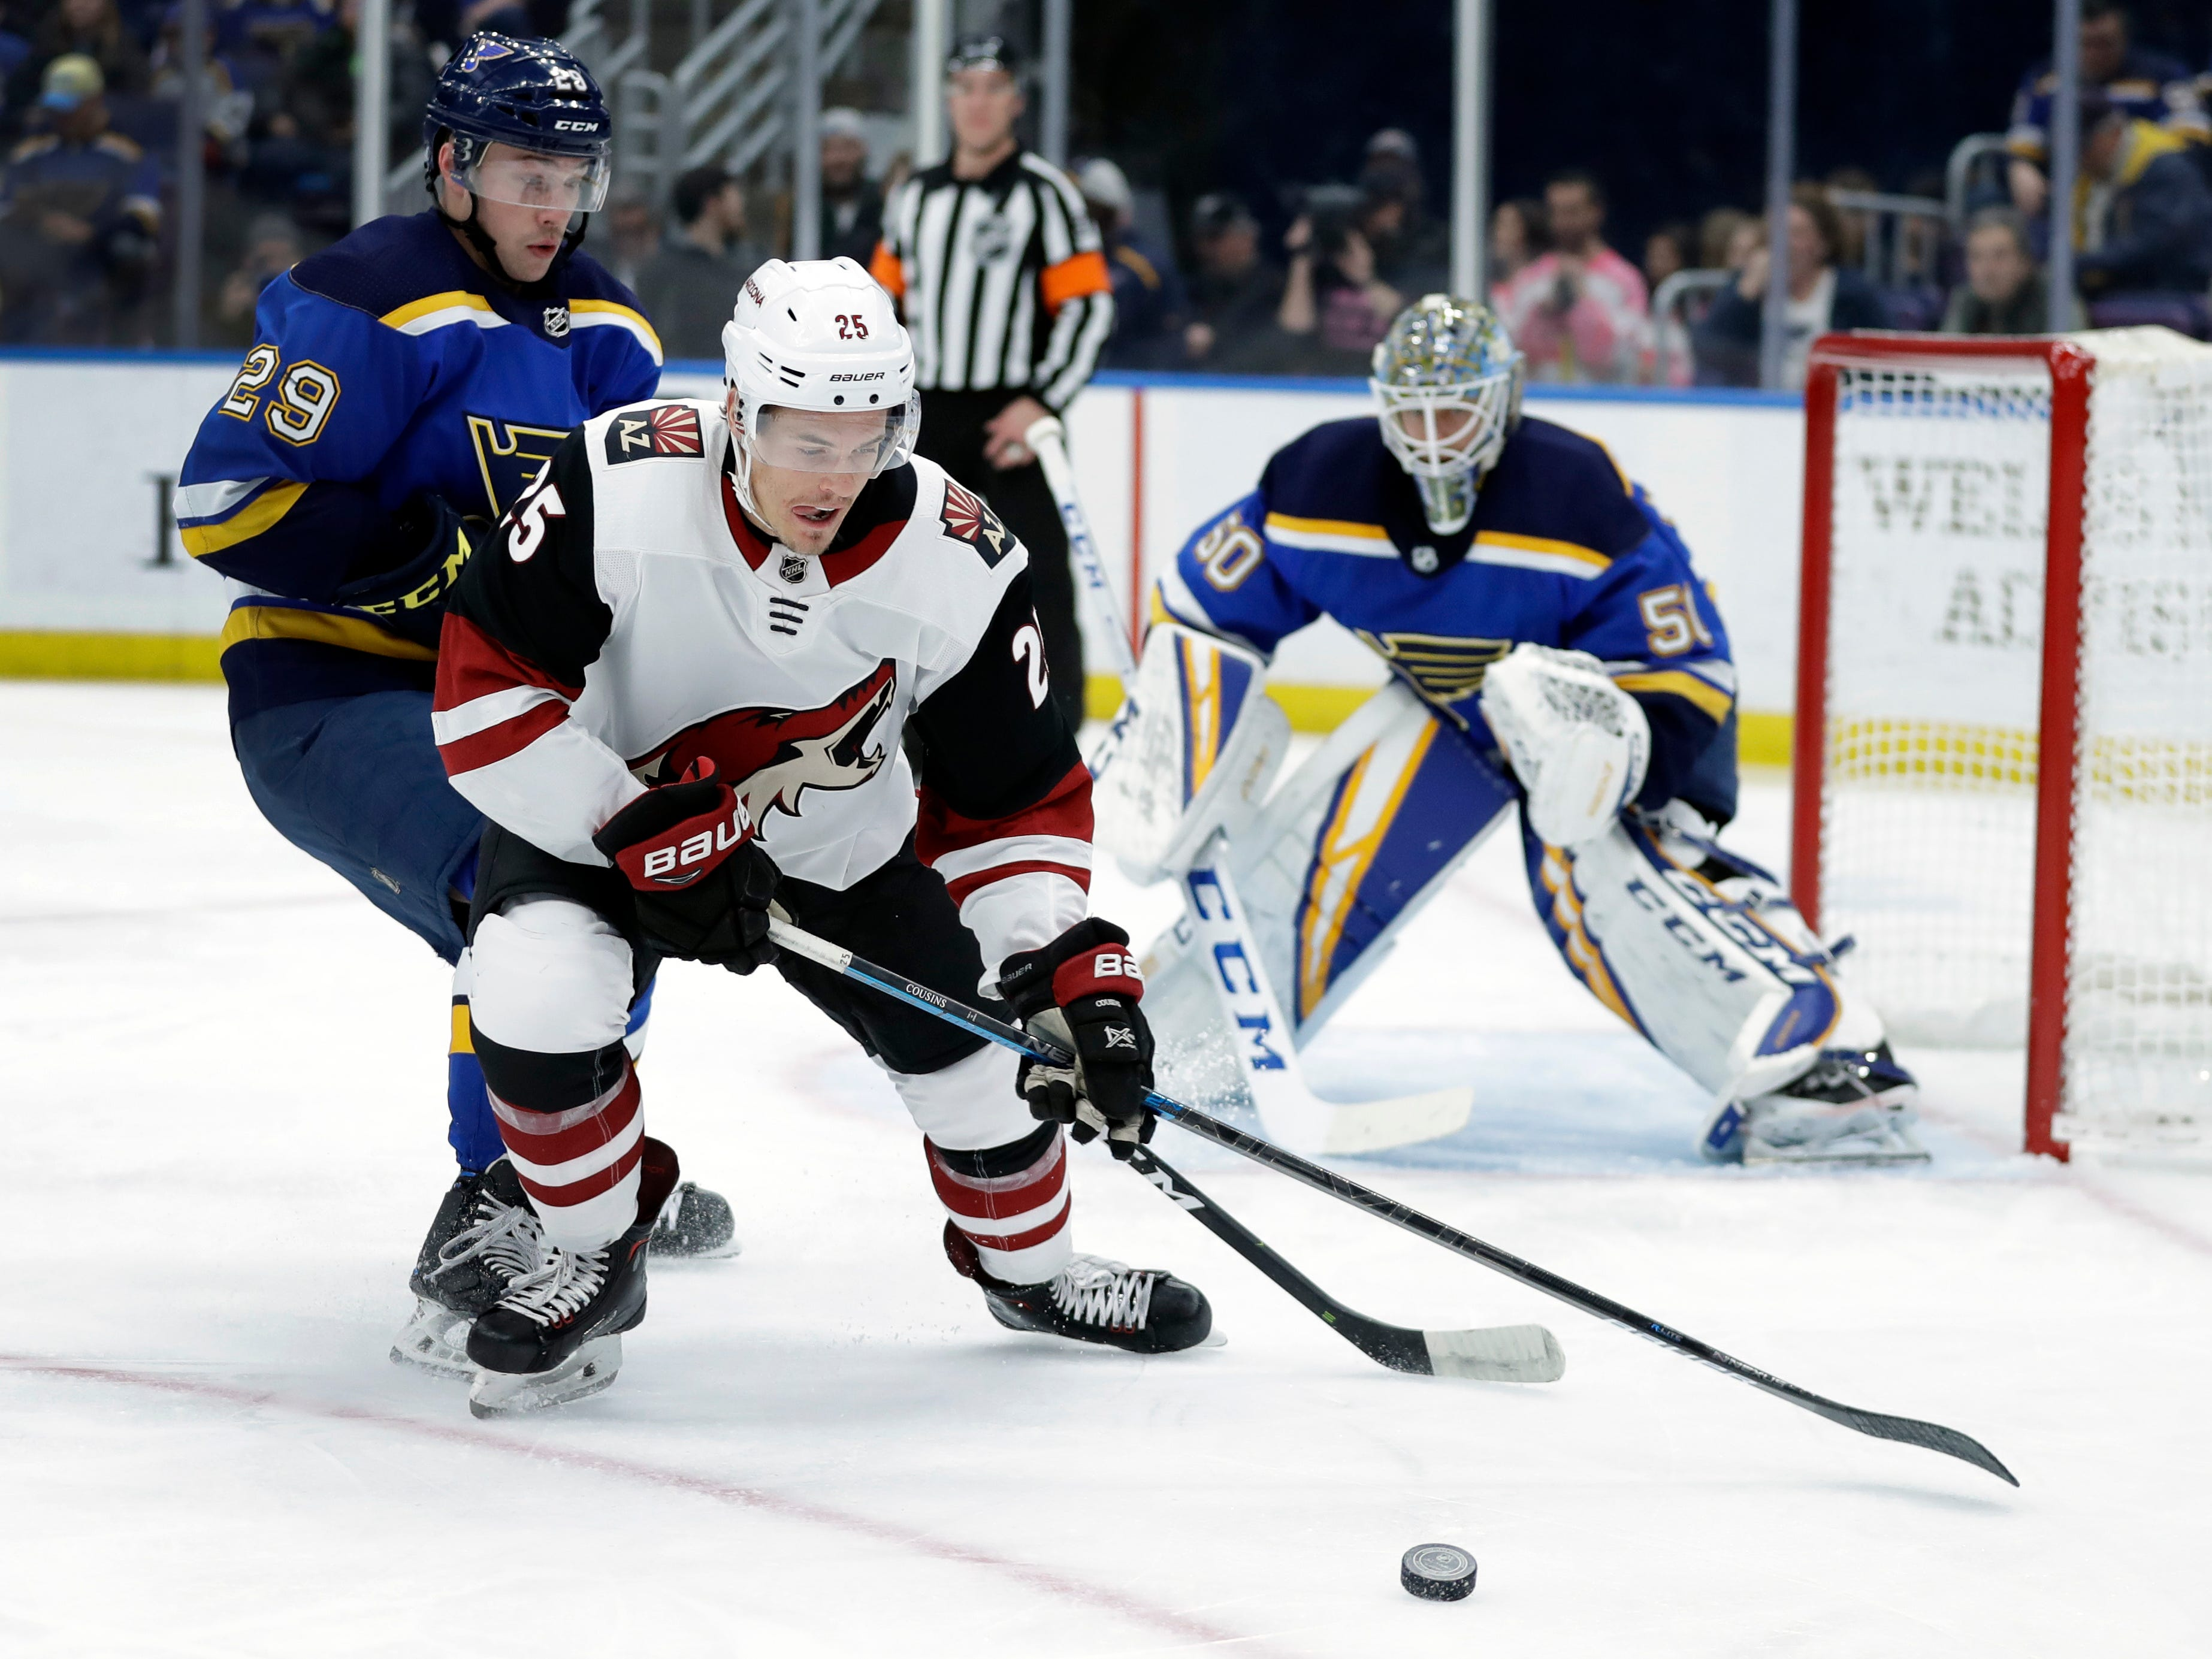 Arizona Coyotes' Nick Cousins controls the puck as St. Louis Blues' Vince Dunn (29) and goaltender Jordan Binnington (50) defend during the first period of an NHL hockey game, Tuesday, March 12, 2019, in St. Louis.